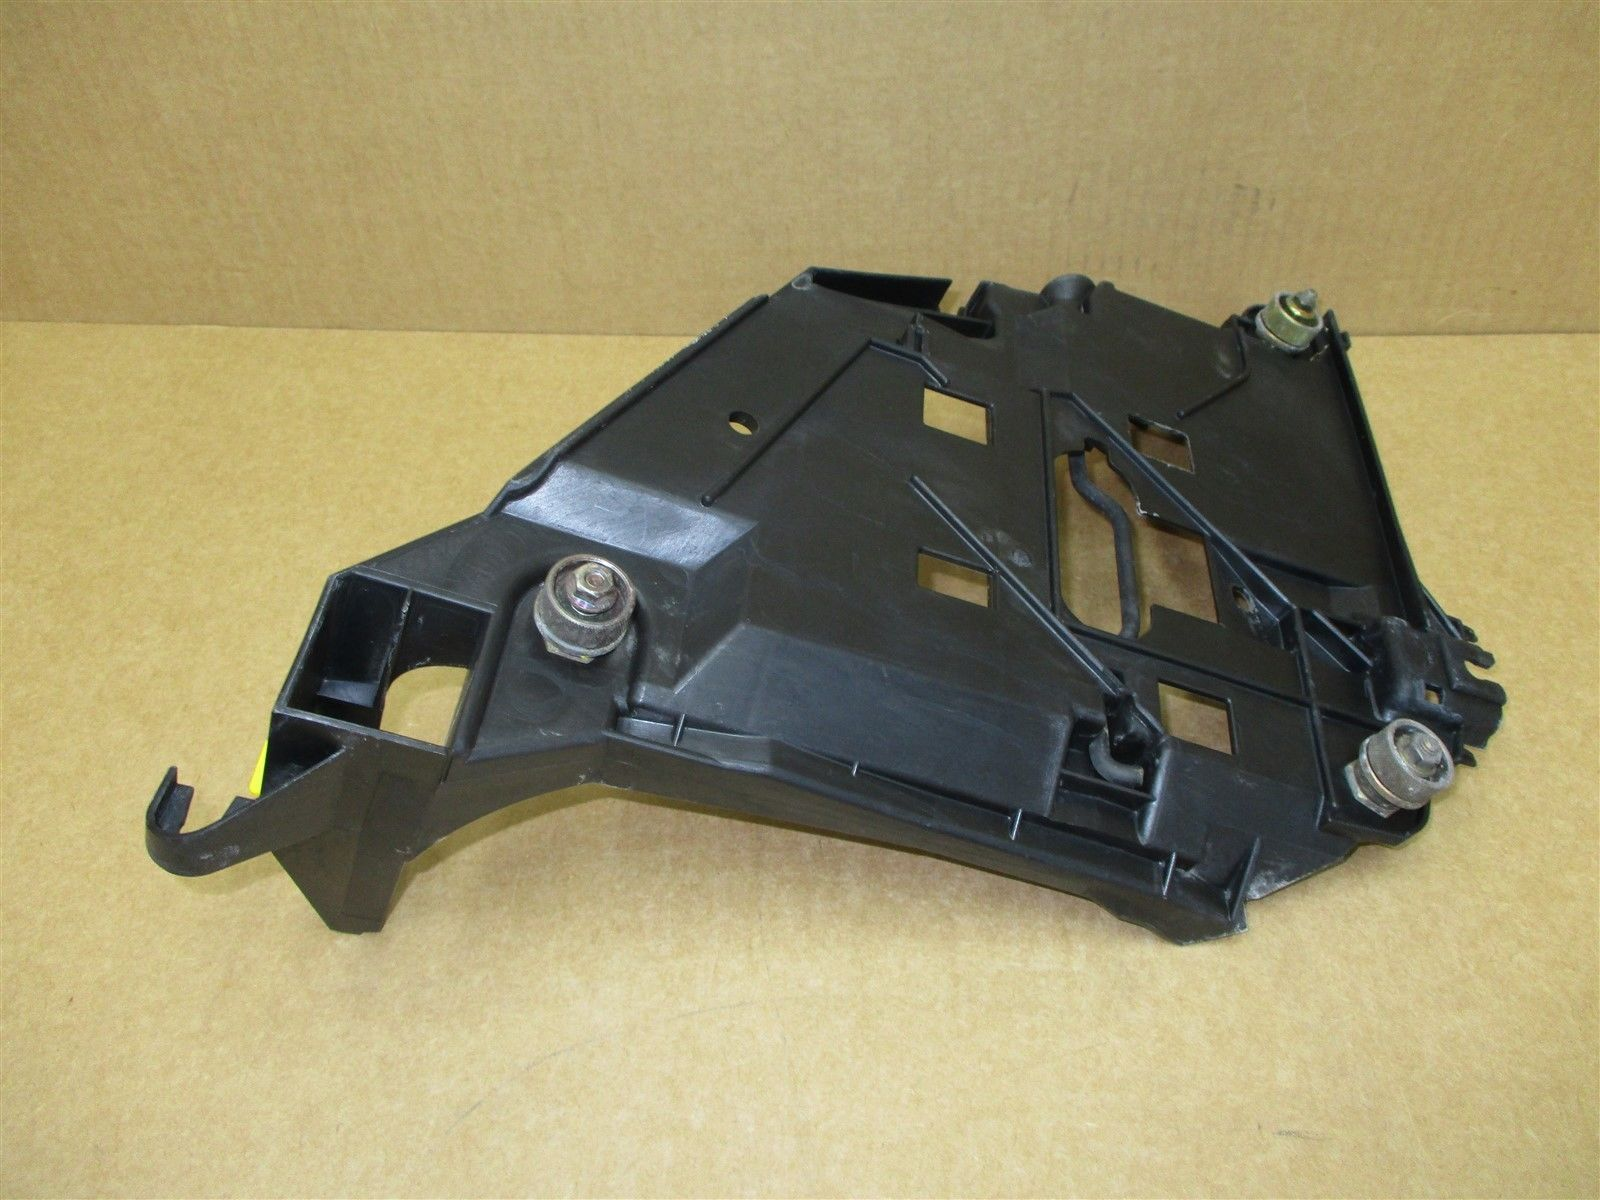 98 Boxster RWD Porsche 986 L HEADLIGHT MOUNTING BRACKET 99663104100 95,703